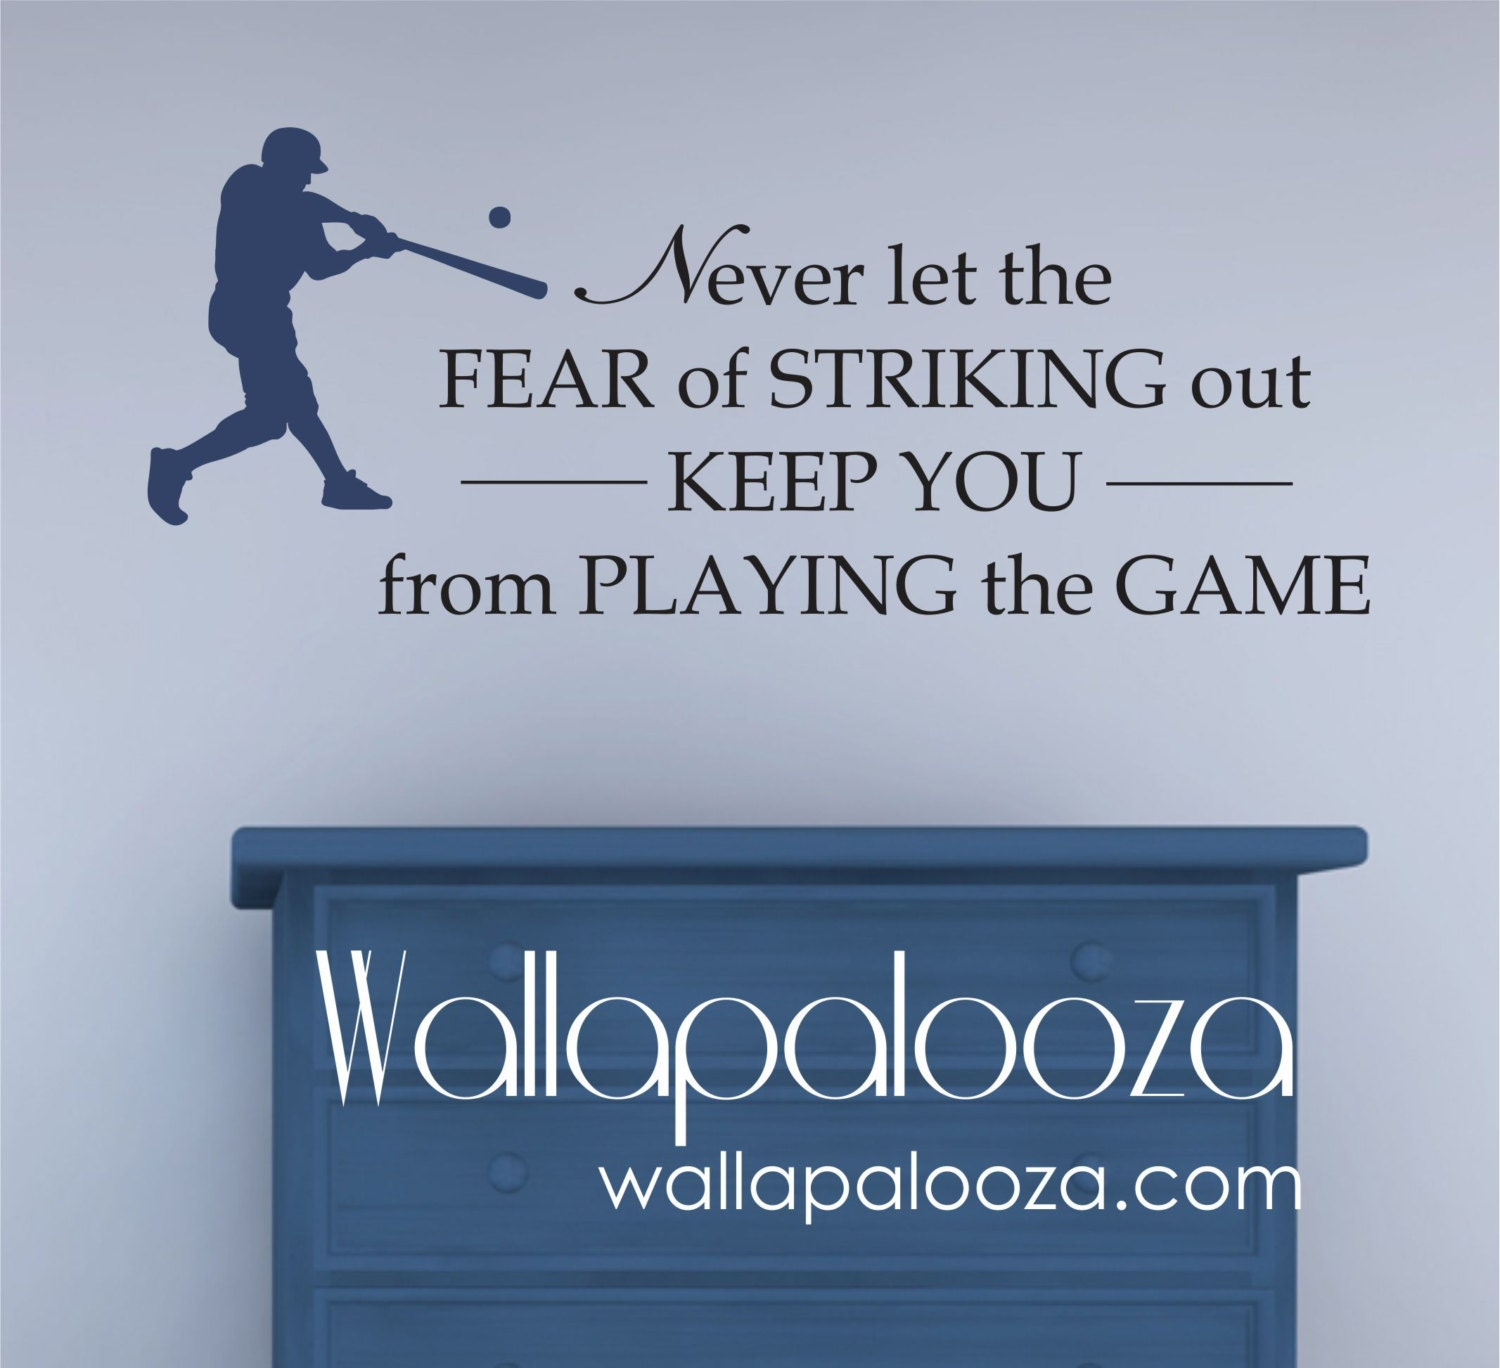 Baseball wall decor roselawnlutheran vintage baseball scoreboard wall dcor baseball wall decal never let the fear of striking out wall decal kids room amipublicfo Choice Image